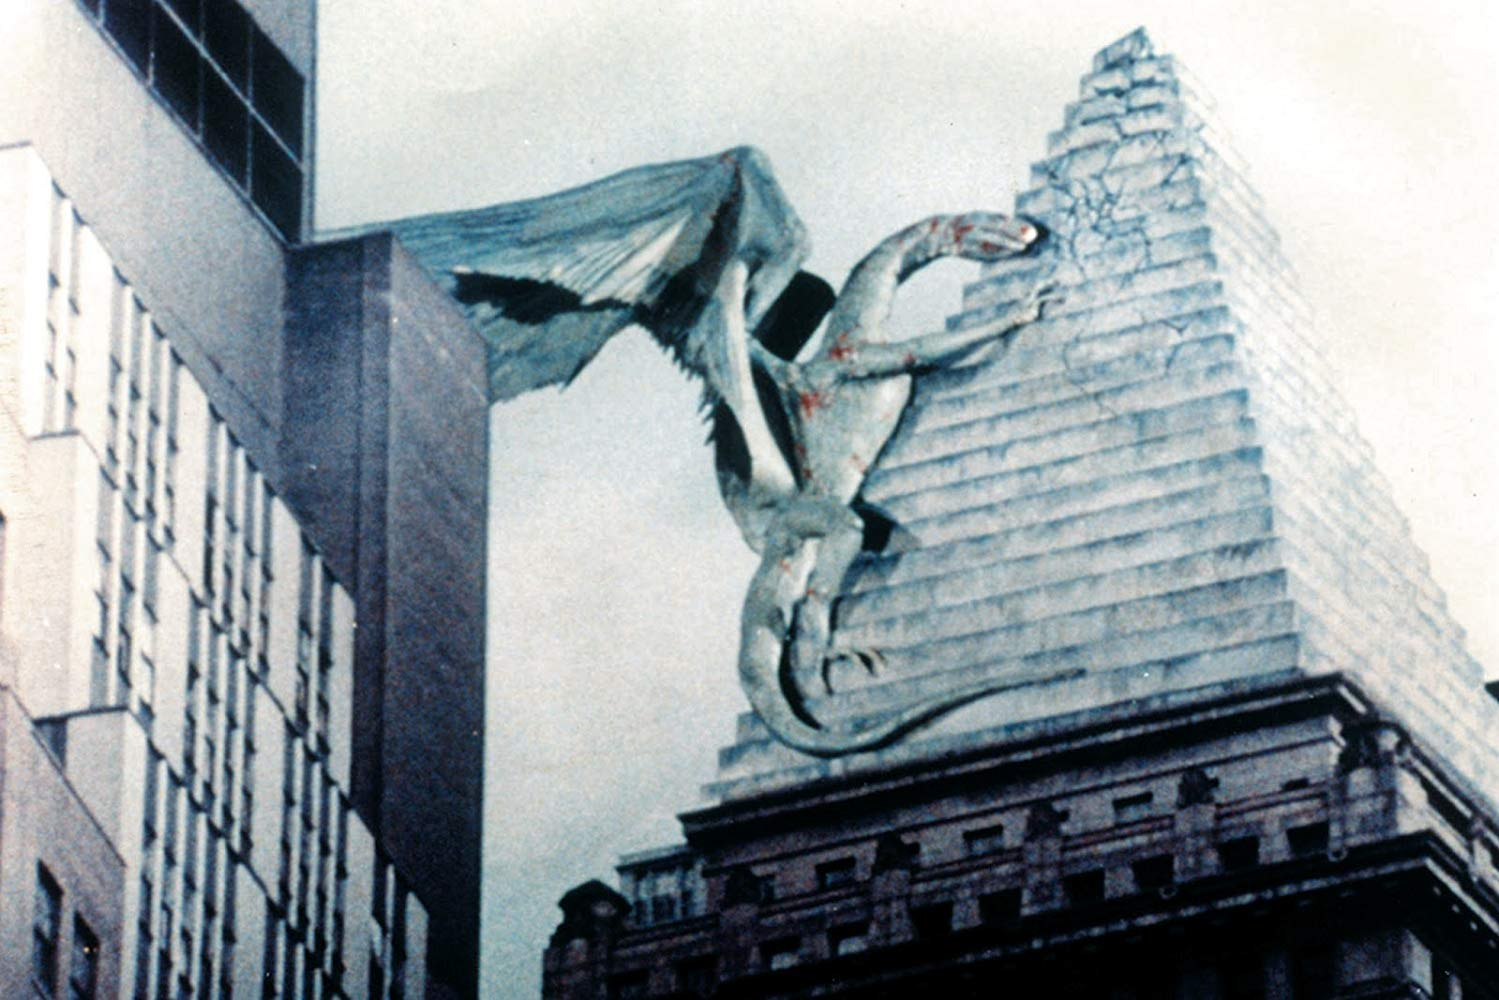 The Quetzalcoatl bird perched atop the Chrysler Building in Q: The Winged Serpent (1982)